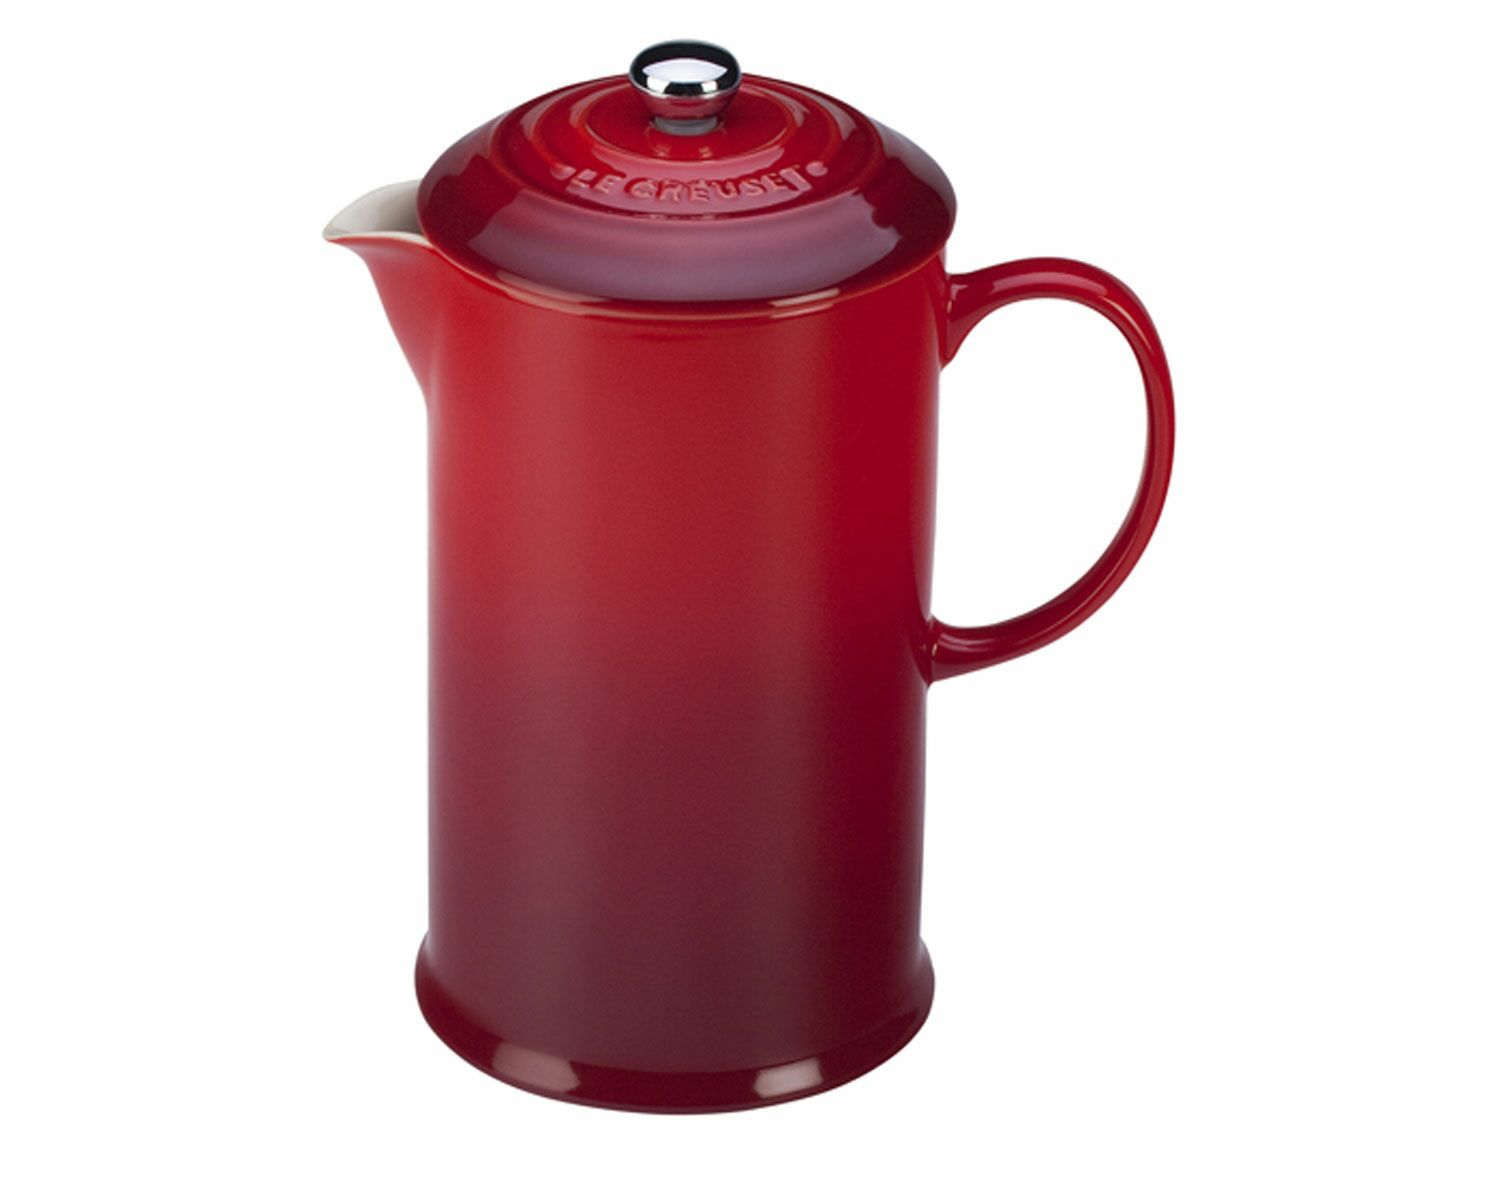 Bed bath beyond french press - 9 Le Crueset Cafe Collection 27 Oz French Press